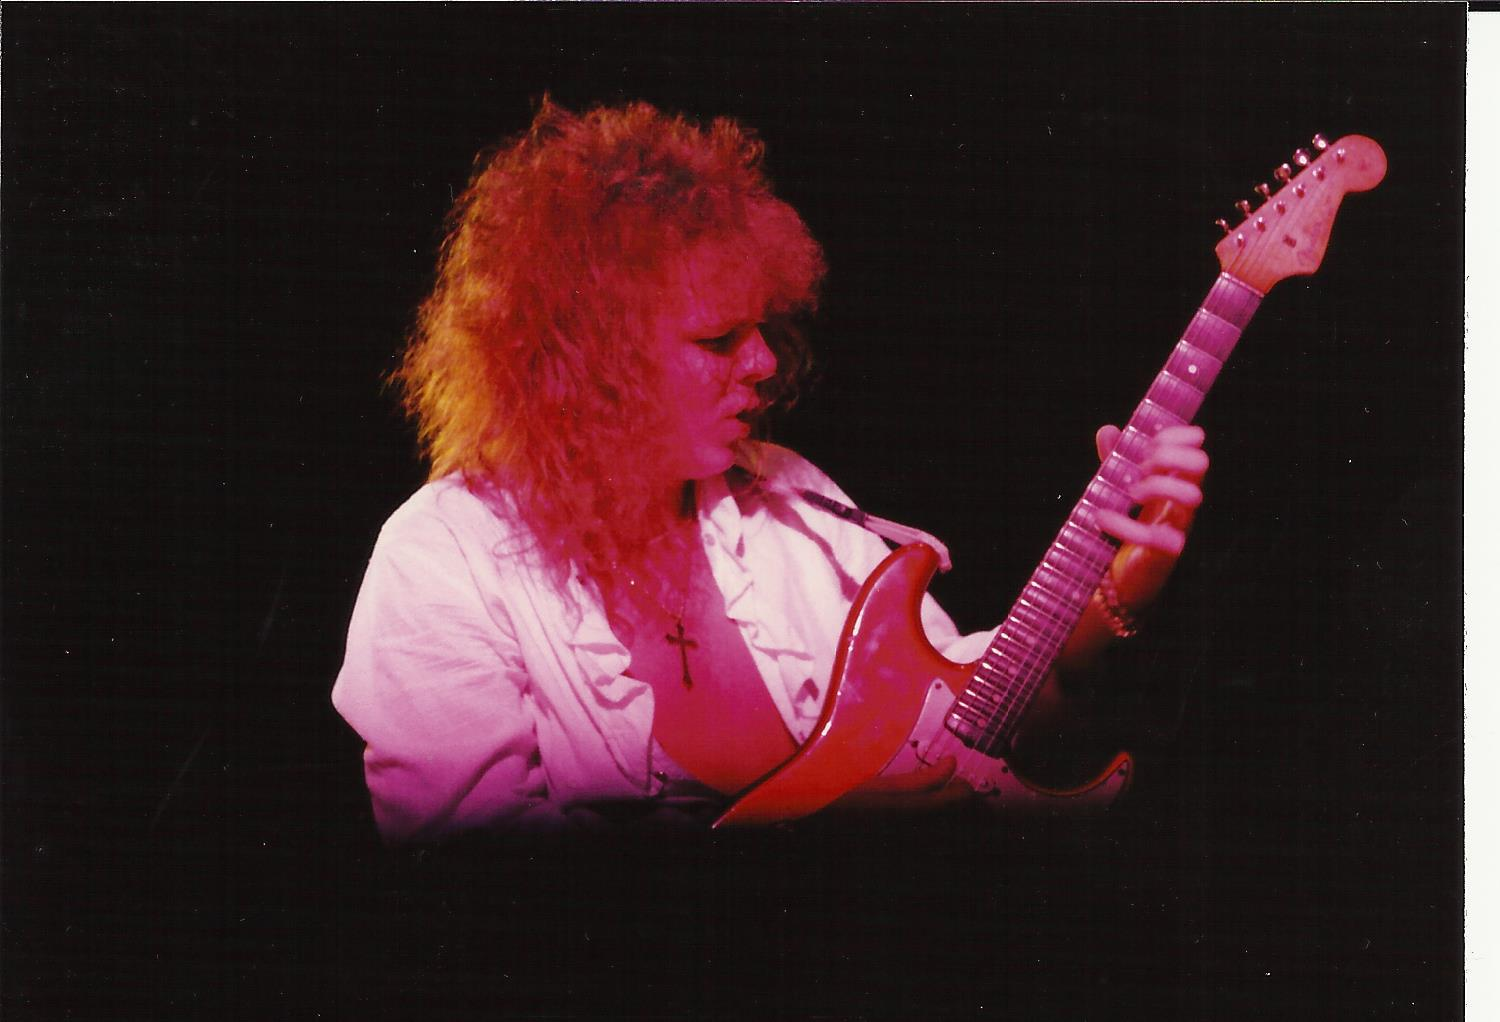 guitar player guitarist yngwie malmsteen no stagefright photo taken by hypnotist chris cady